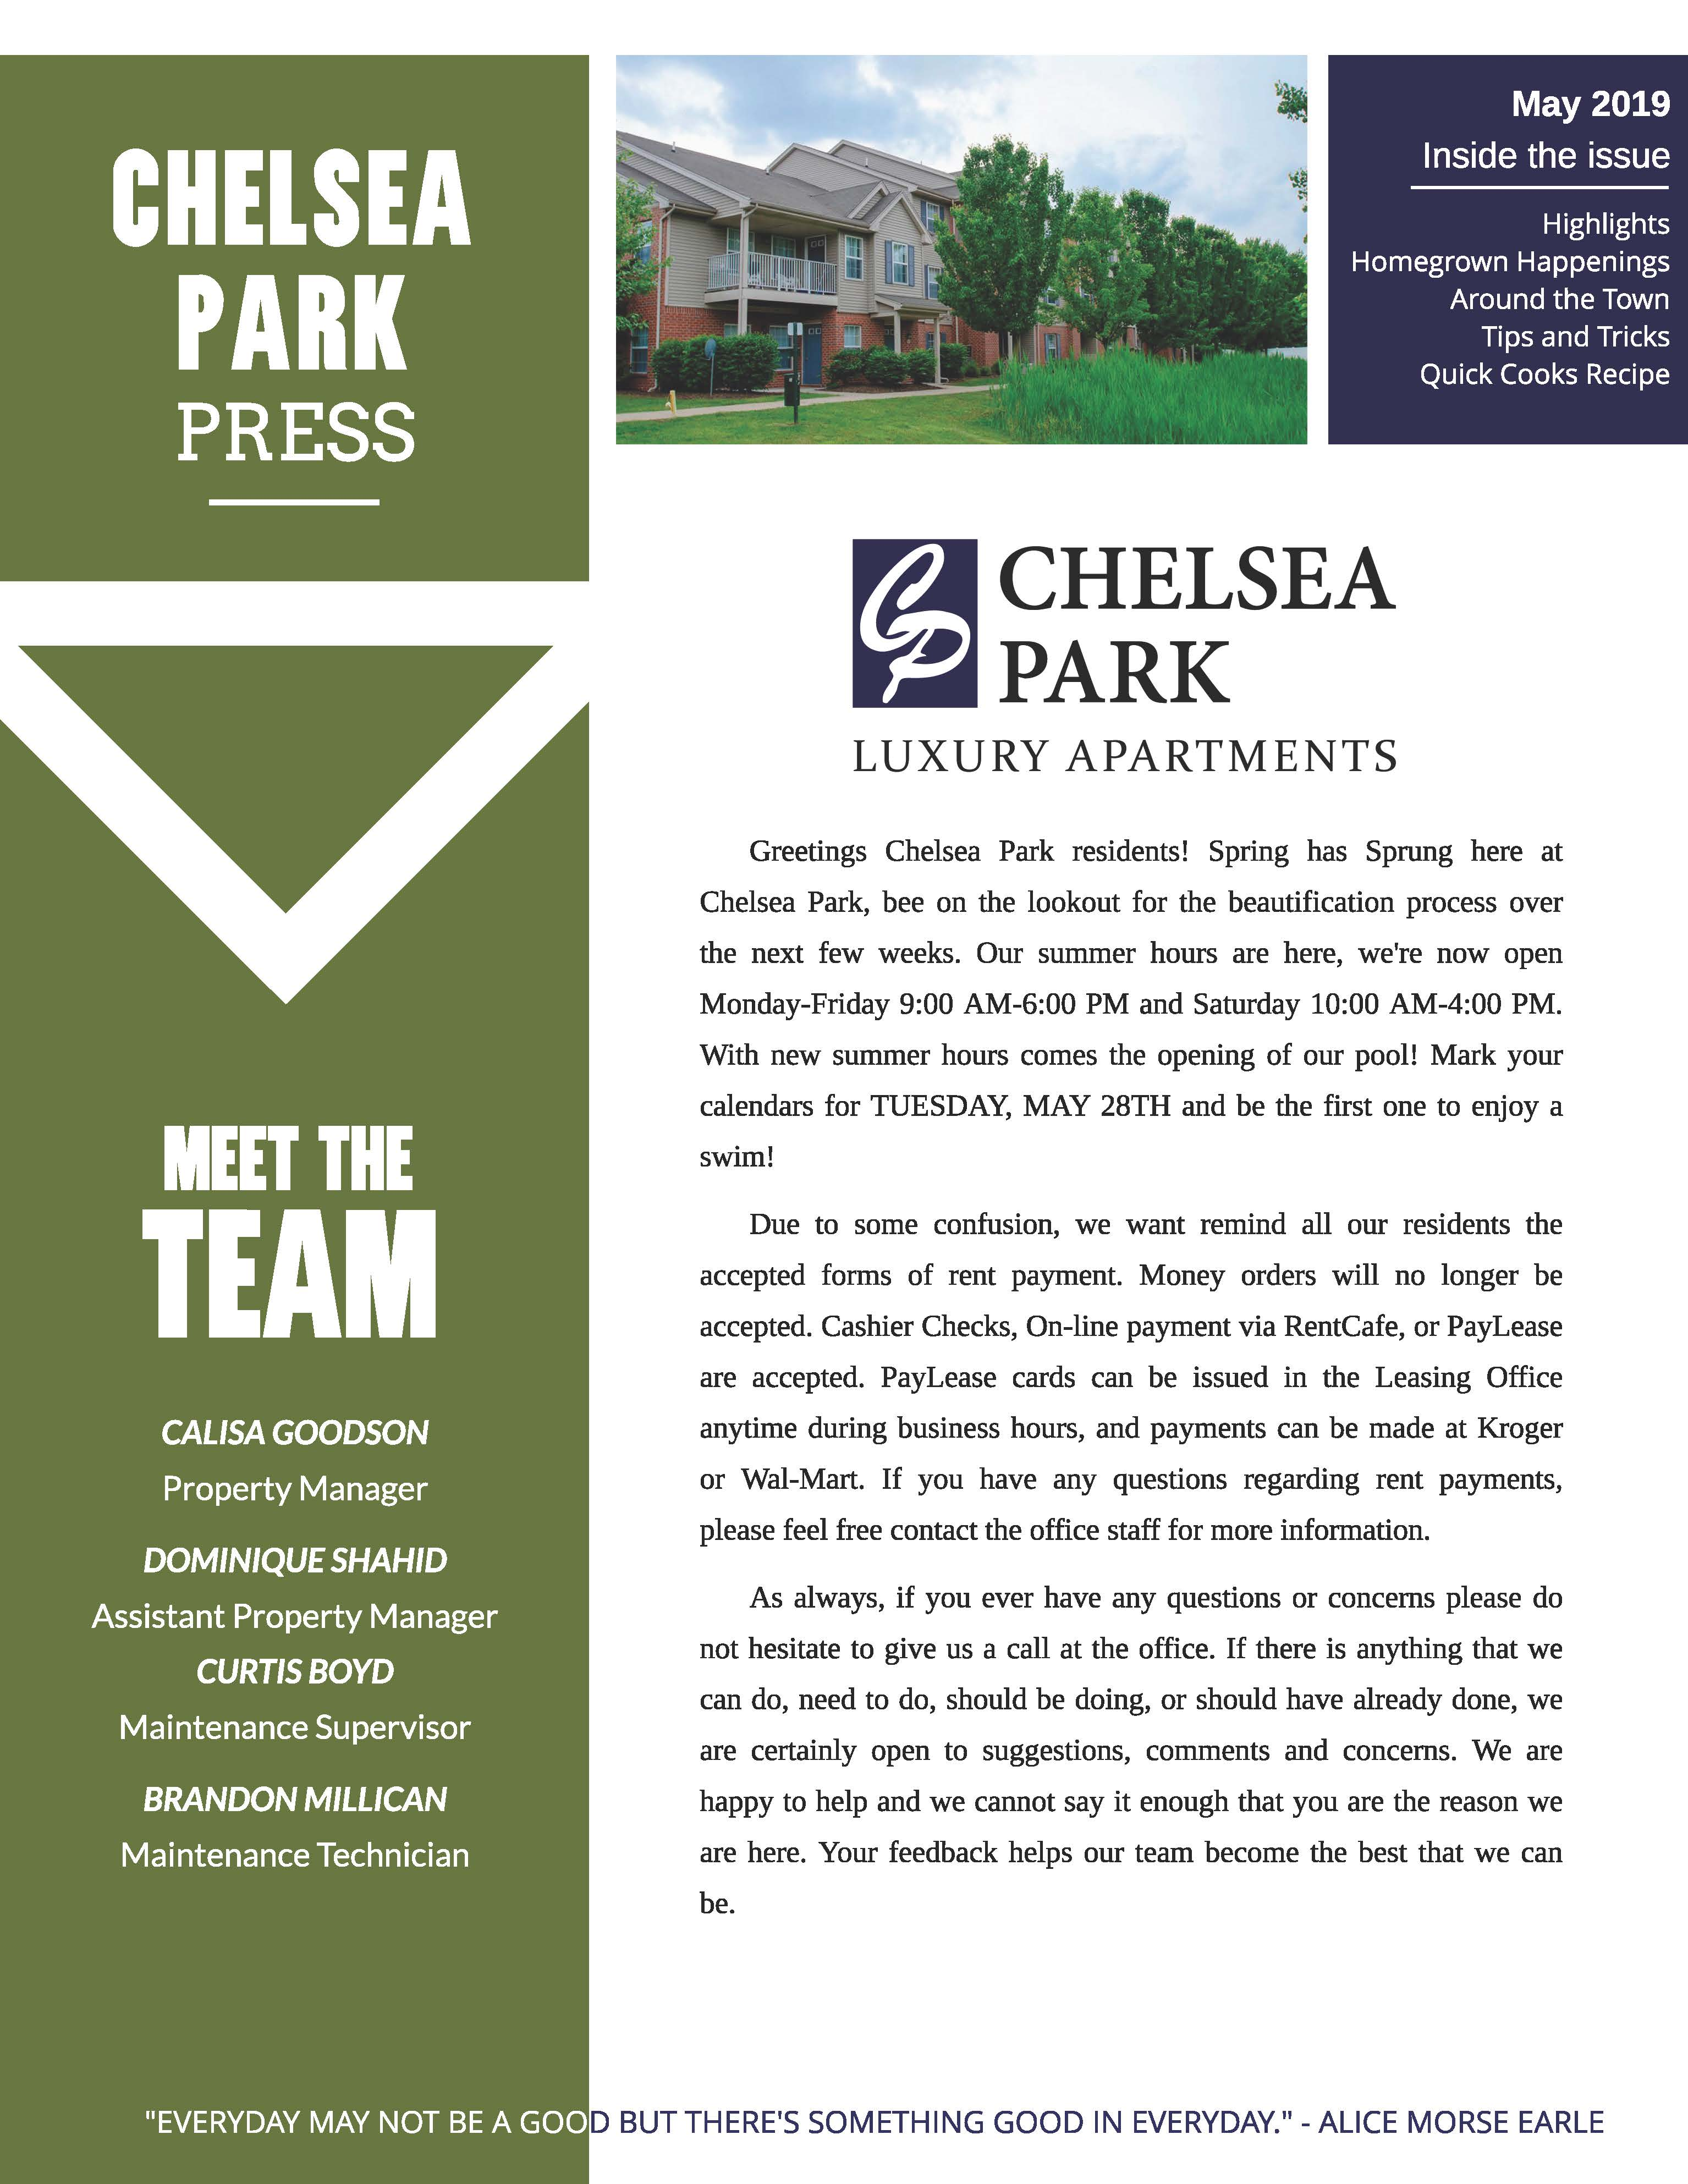 May 2019 Newsletter The Chelsea Park Press